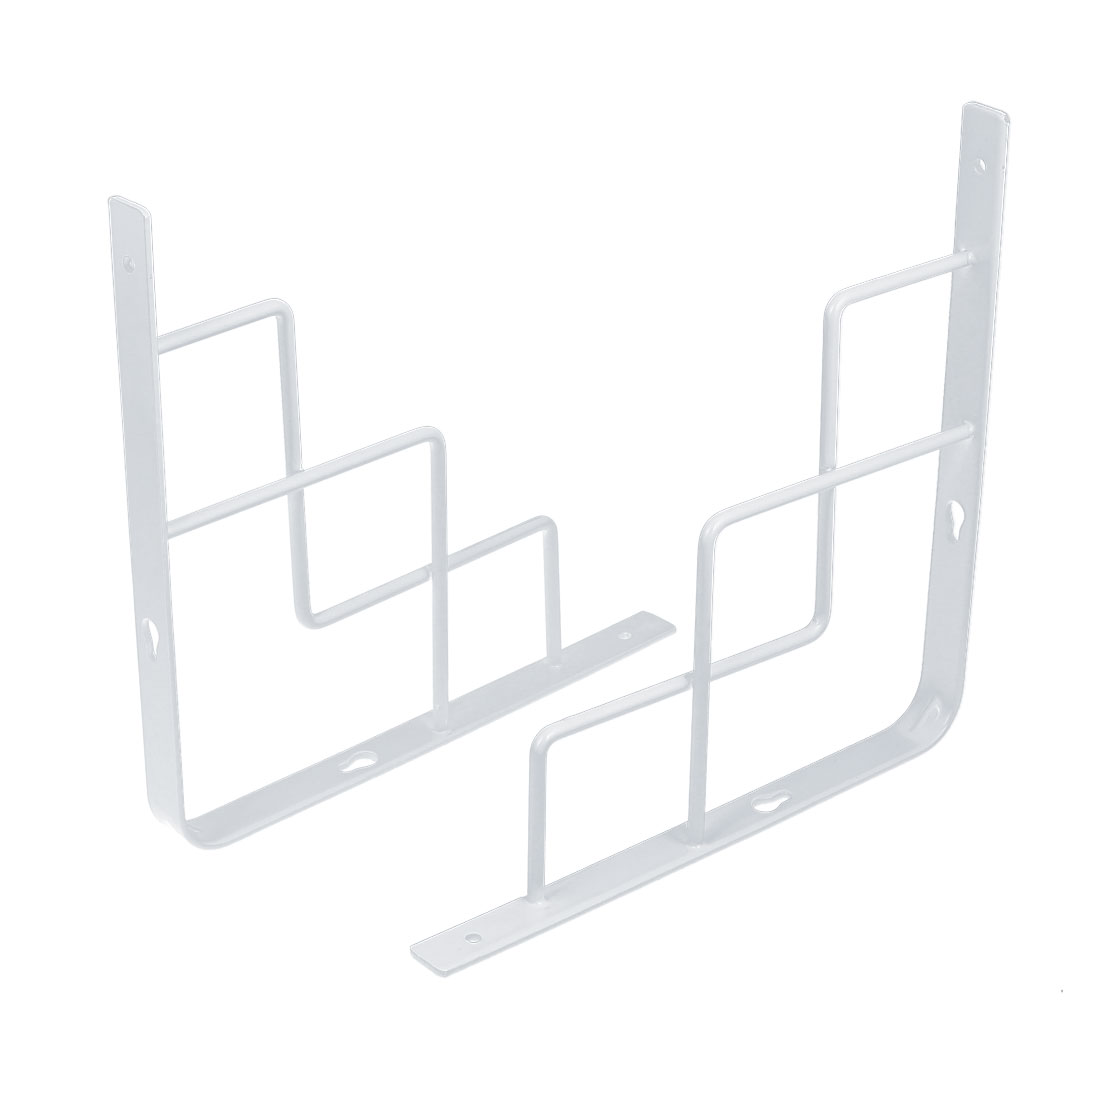 250mm x 250mm Stainless Steel 90 degree Wall Mounted Holder Shelf Bracket 2pcs